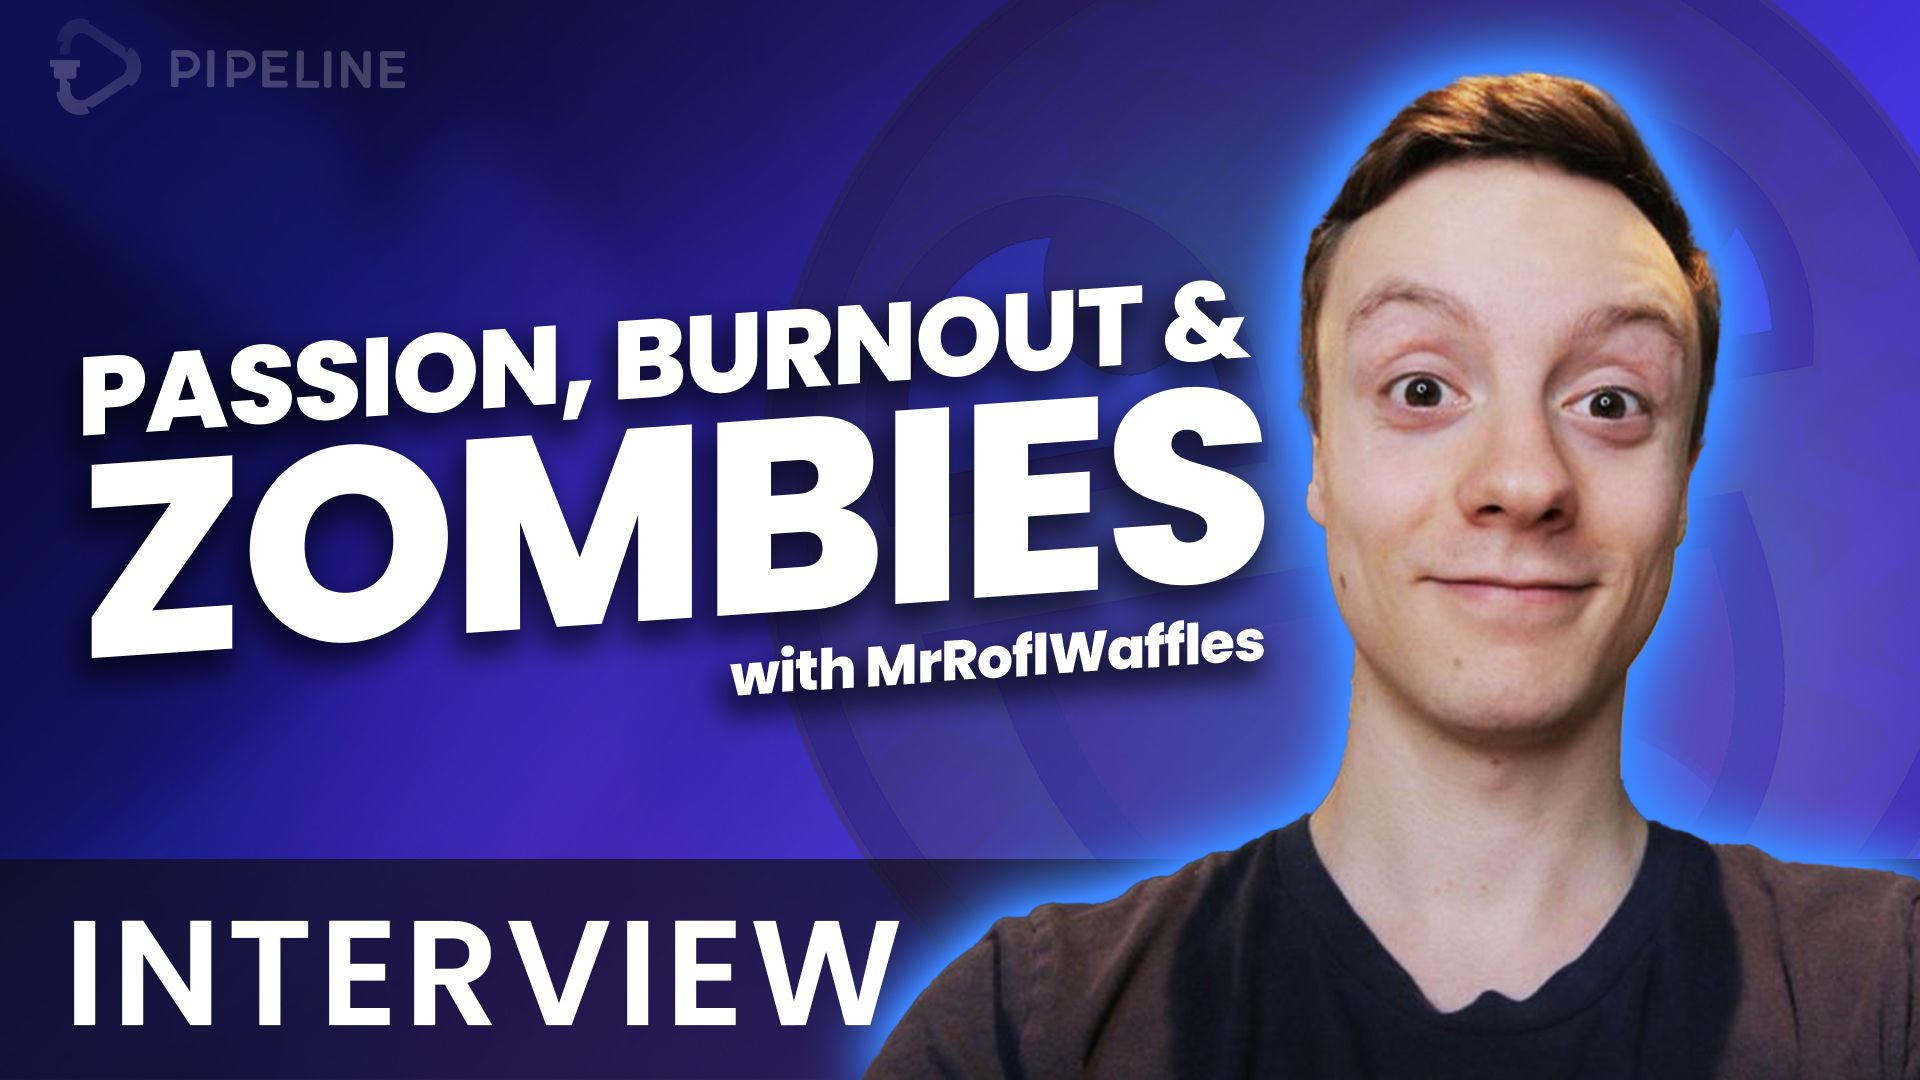 Passion, Burnout, and Zombies! MrRoflWaffles